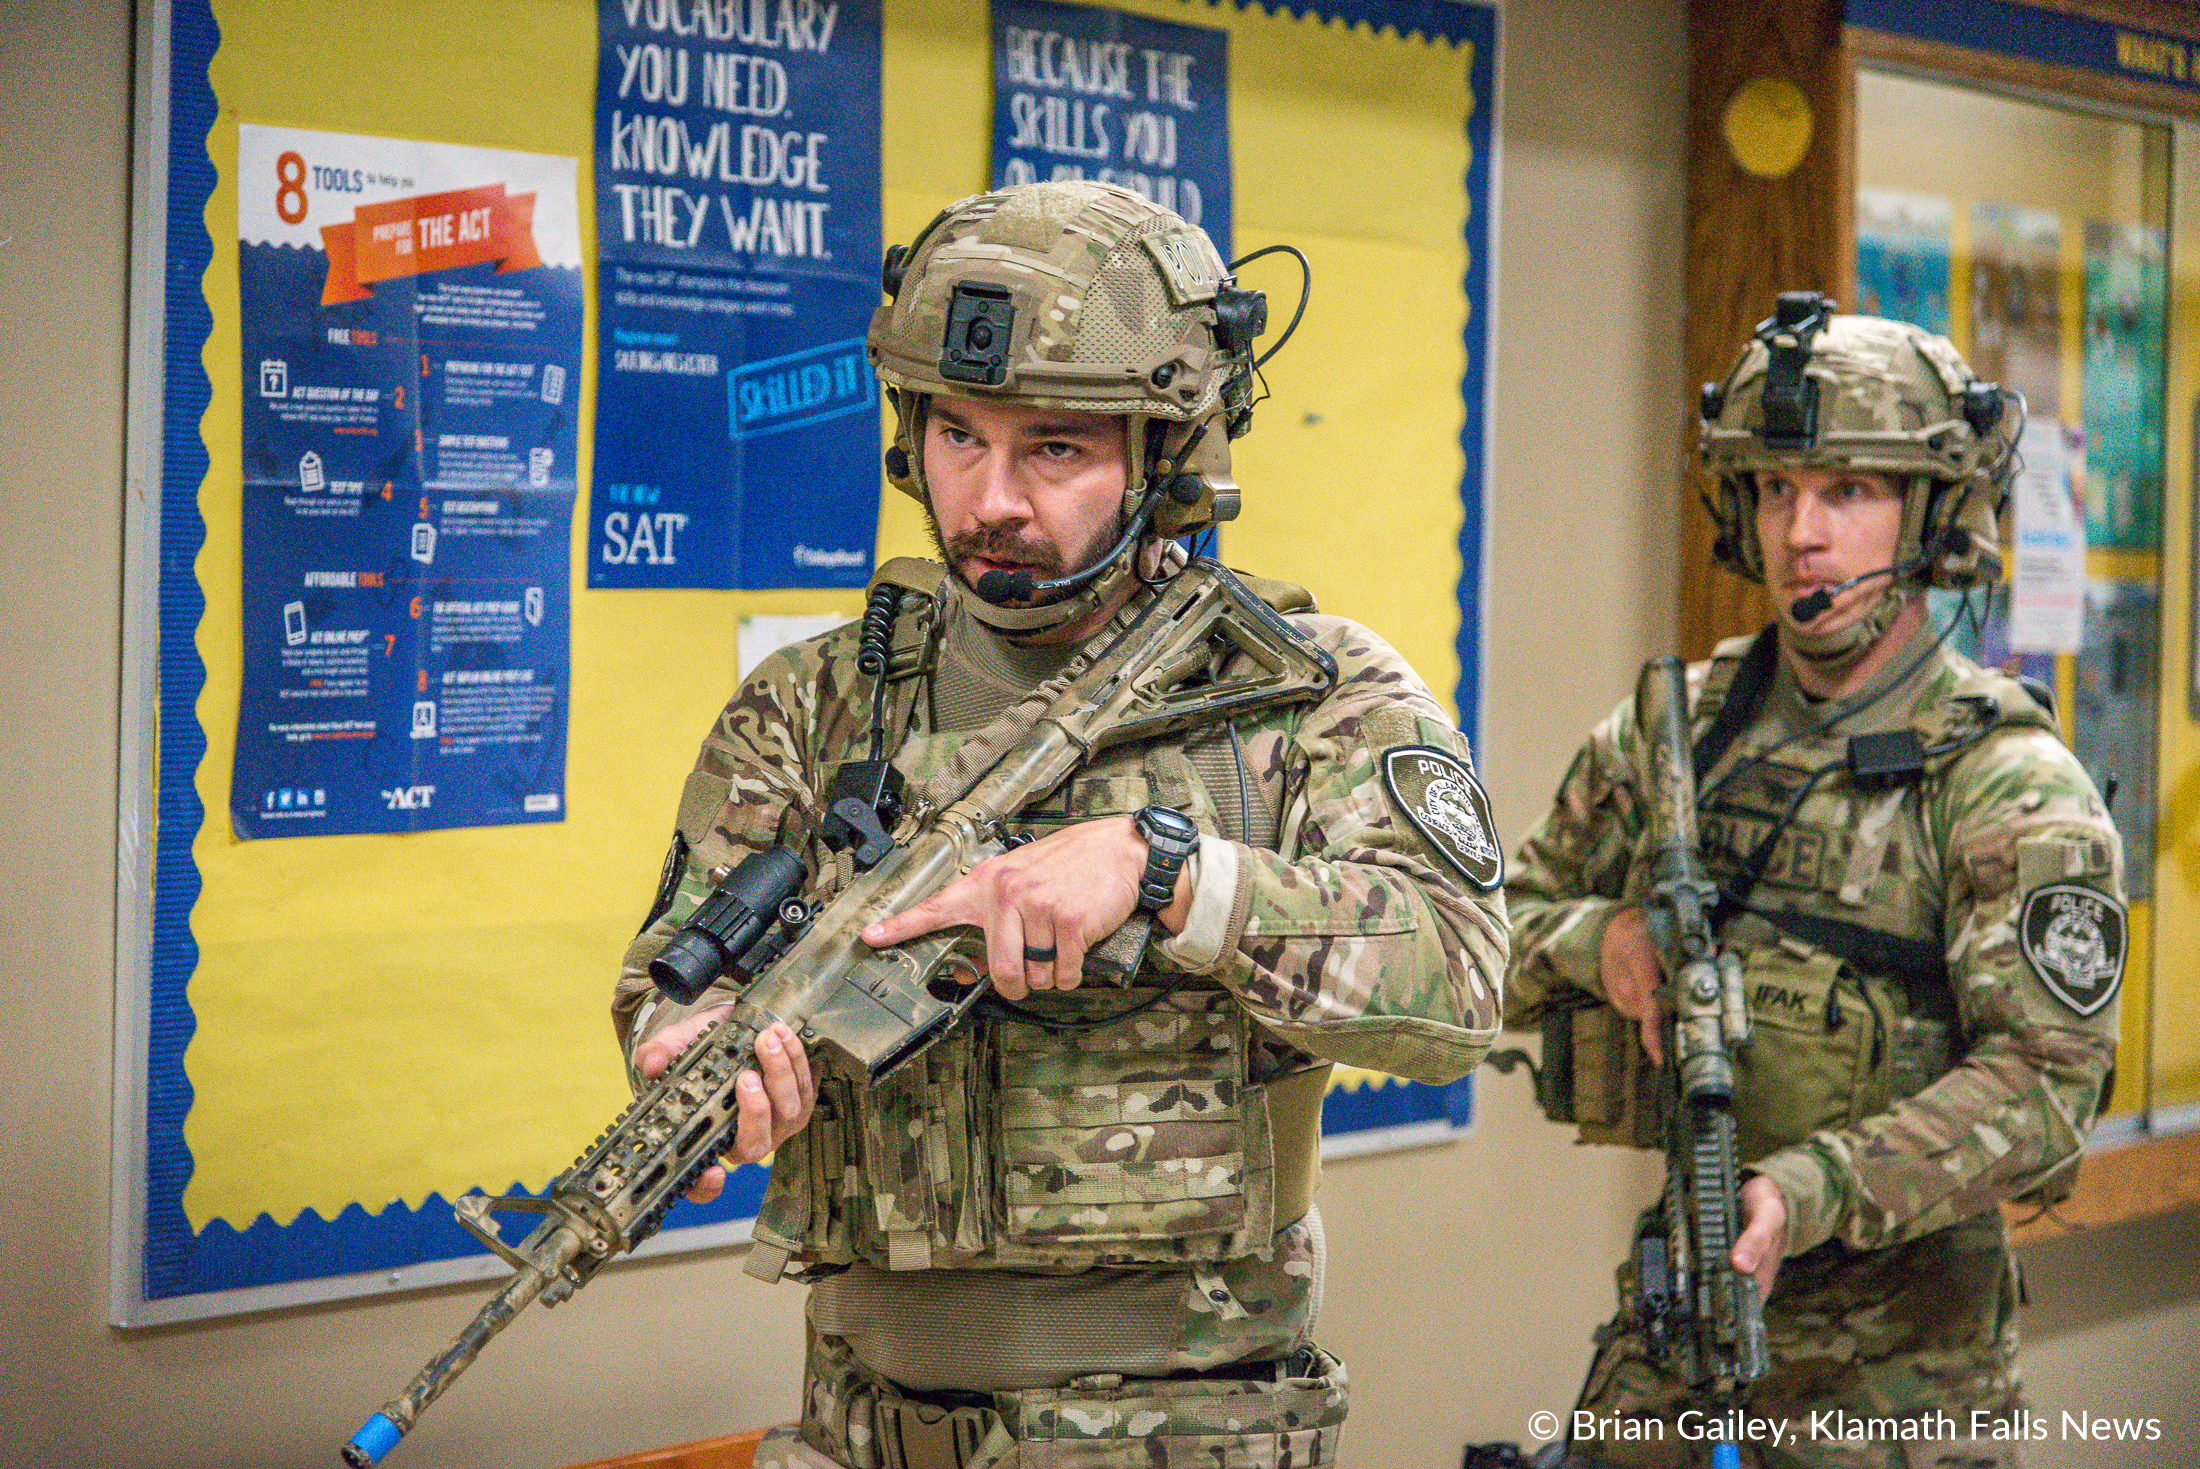 This image is part of a photo story about First Responders and faculty/staff of the Klamath County School District used Henley High School in an Active Shooter Drill on Nov. 9, 2017. (Image: Brian Gailey)  Full Story: https://kfne.ws/2yZaYQw